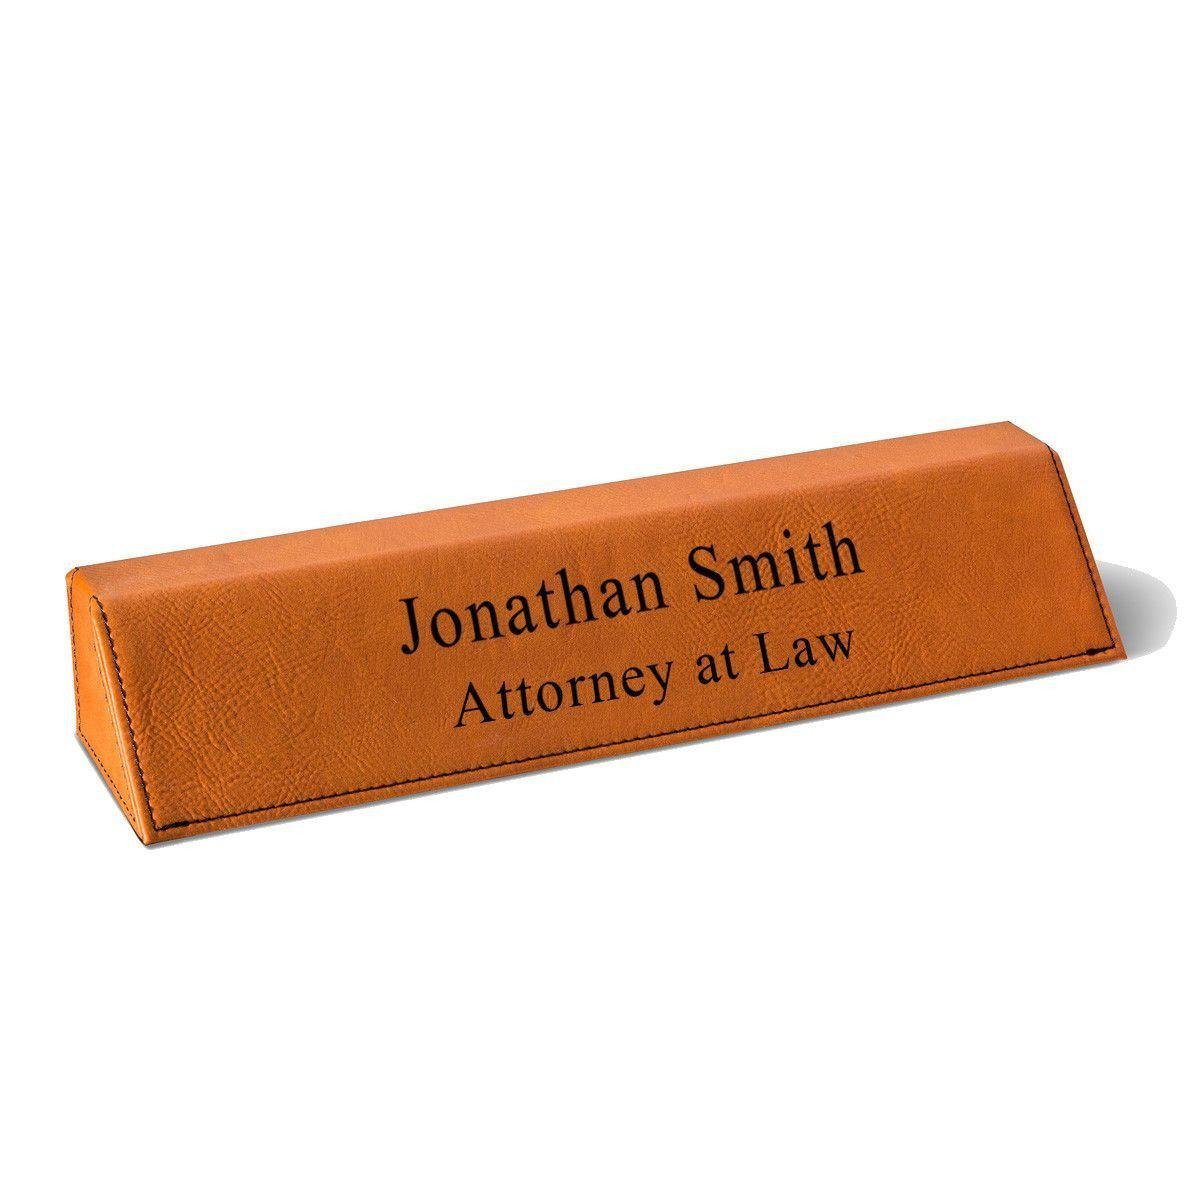 Personalized-Desk-Name-Plate